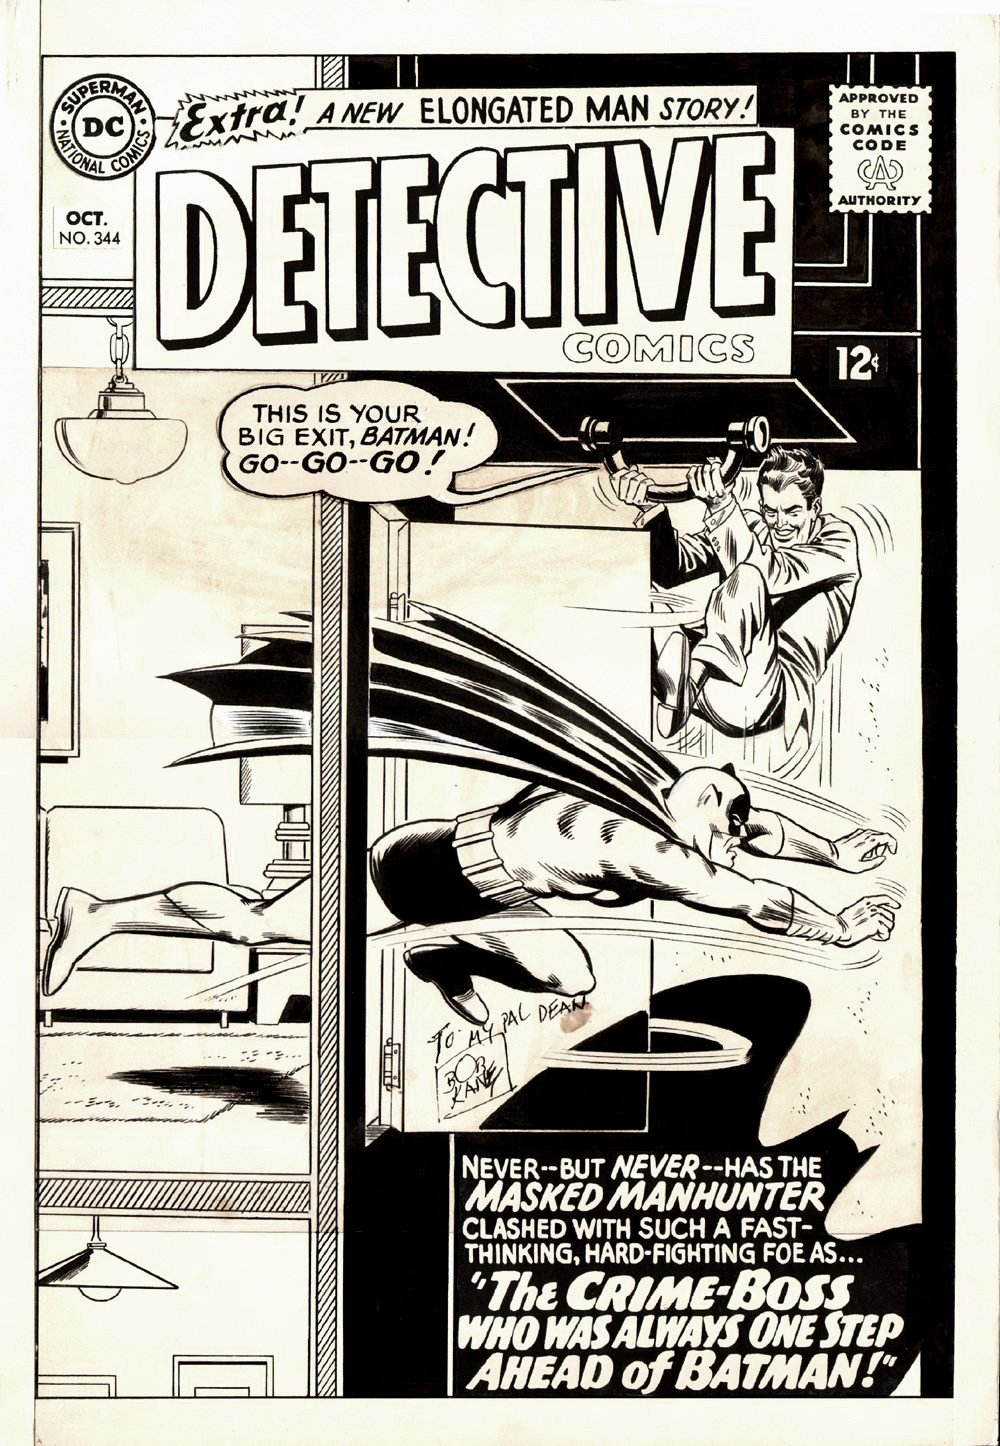 Detective Comics #344 Cover (Large Art) 1965